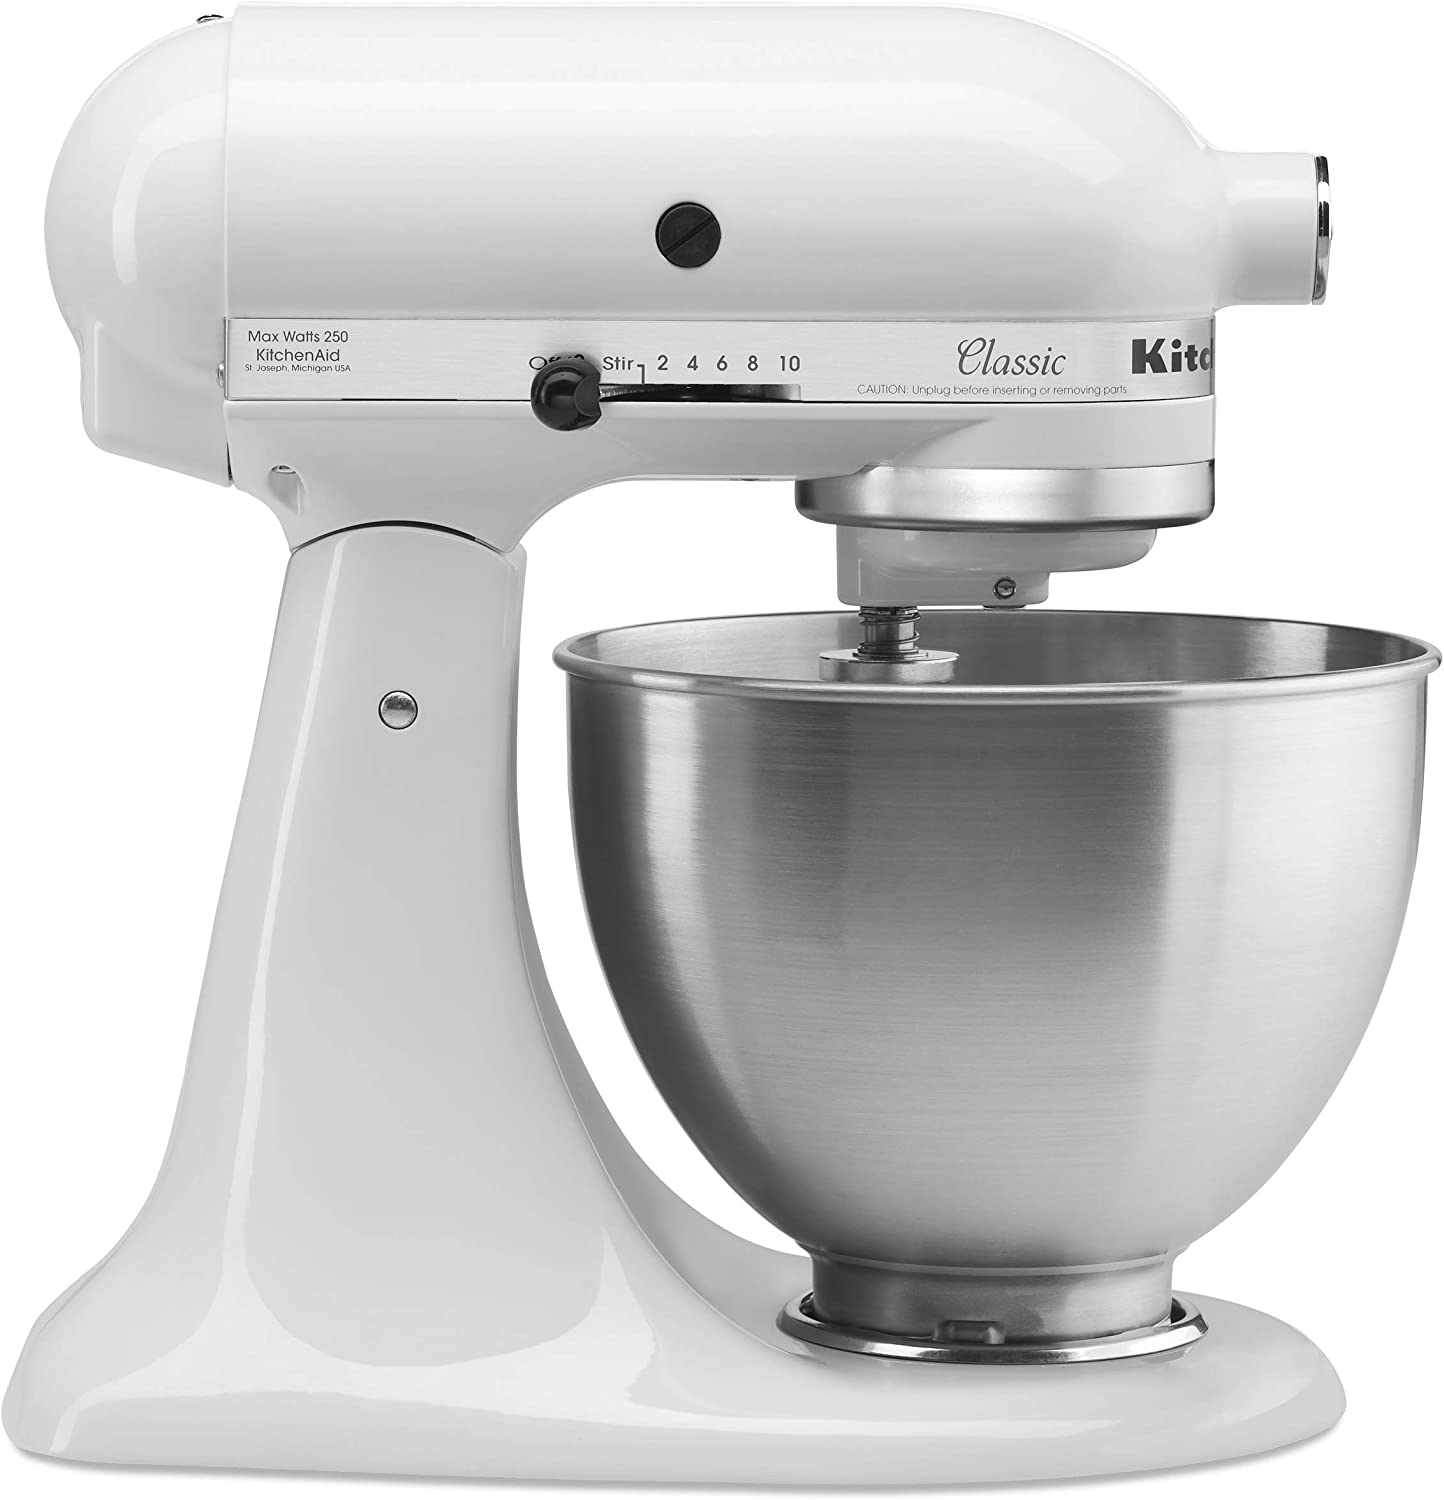 B00004SGFW KitchenAid Classic Series 4.5 Quart Tilt-Head Stand Mixer, White (K45SSWH) 71MTiwqi4dL